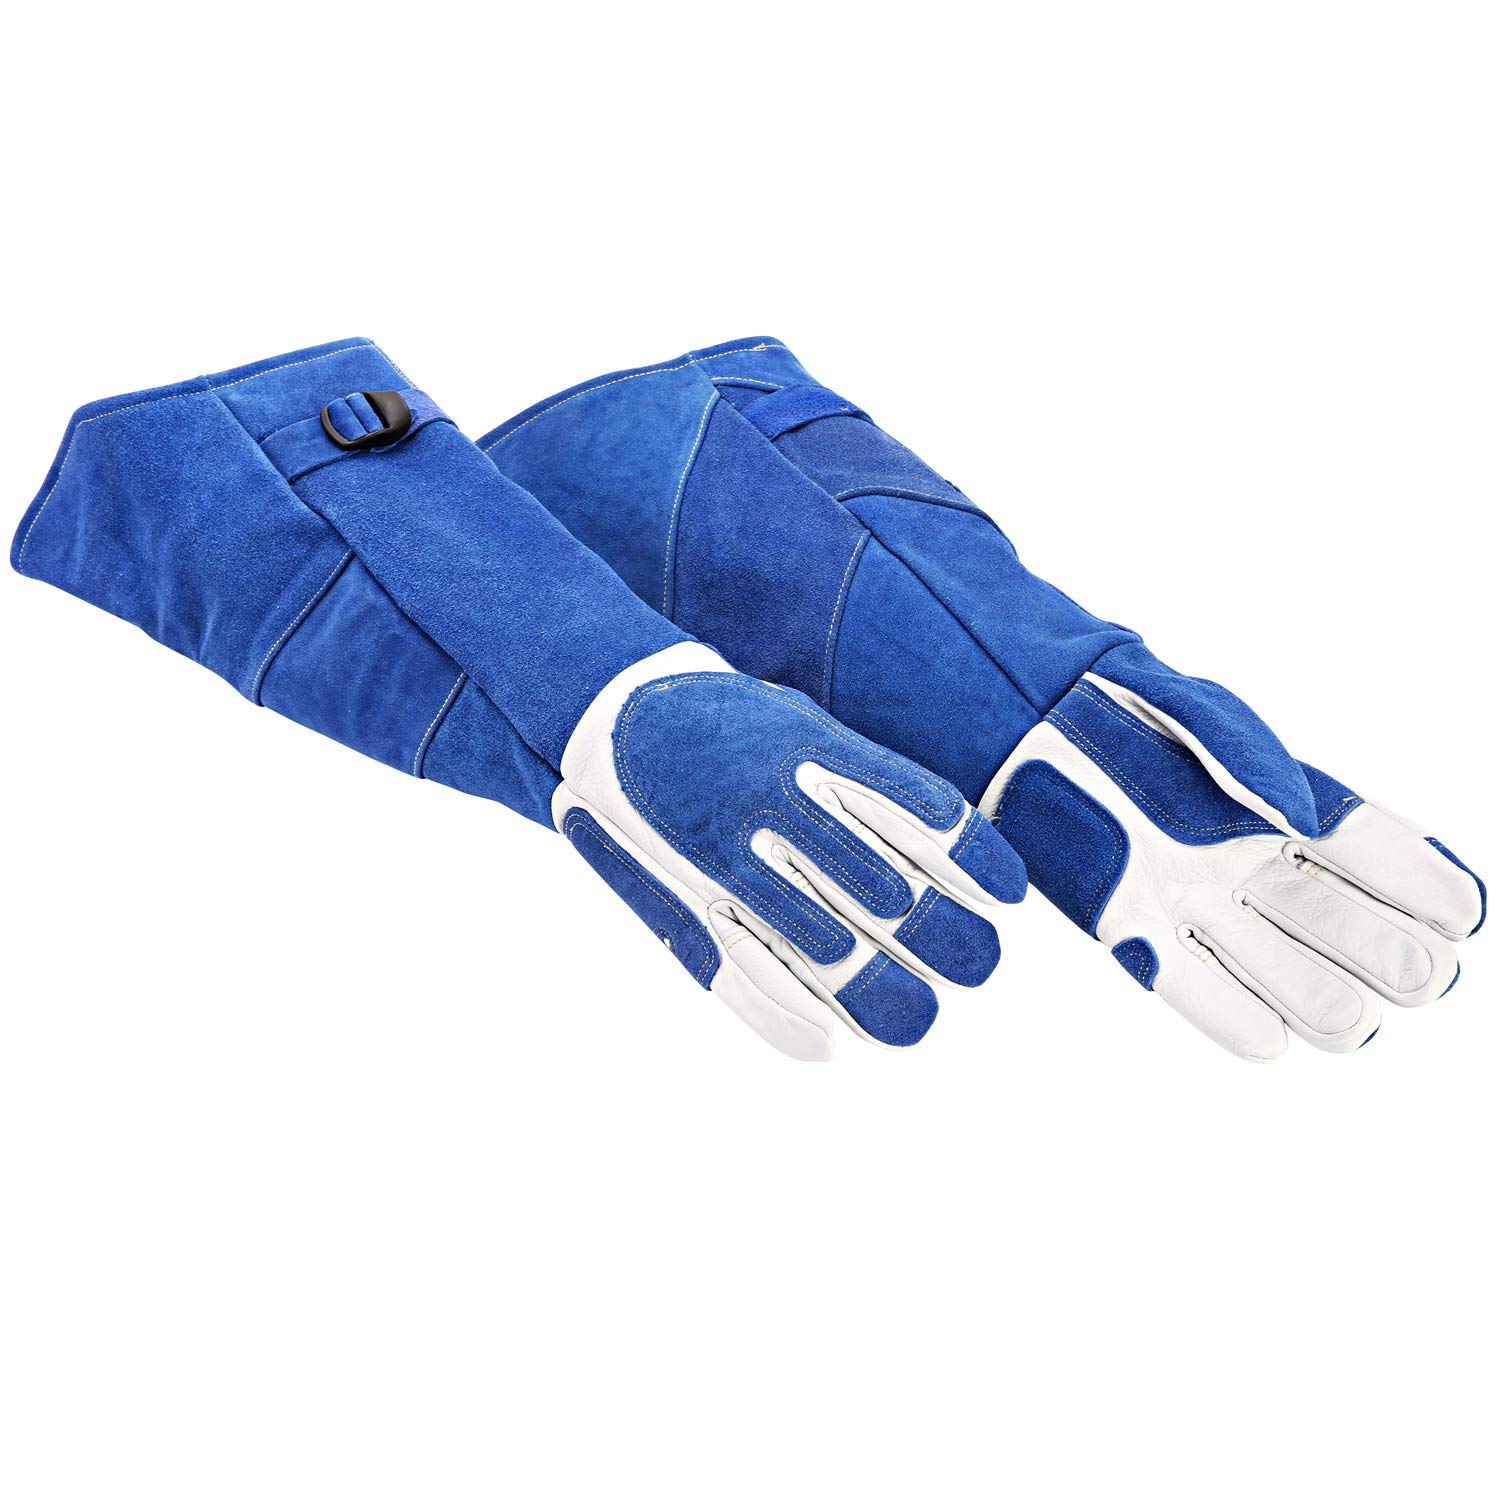 EULANGDE Arc Armor Heavy Duty MIG/Stick Welding Glove,21'' Long Cuff cowhide Specialty Welders Gloves M L XL (Medium) by FULANGDE